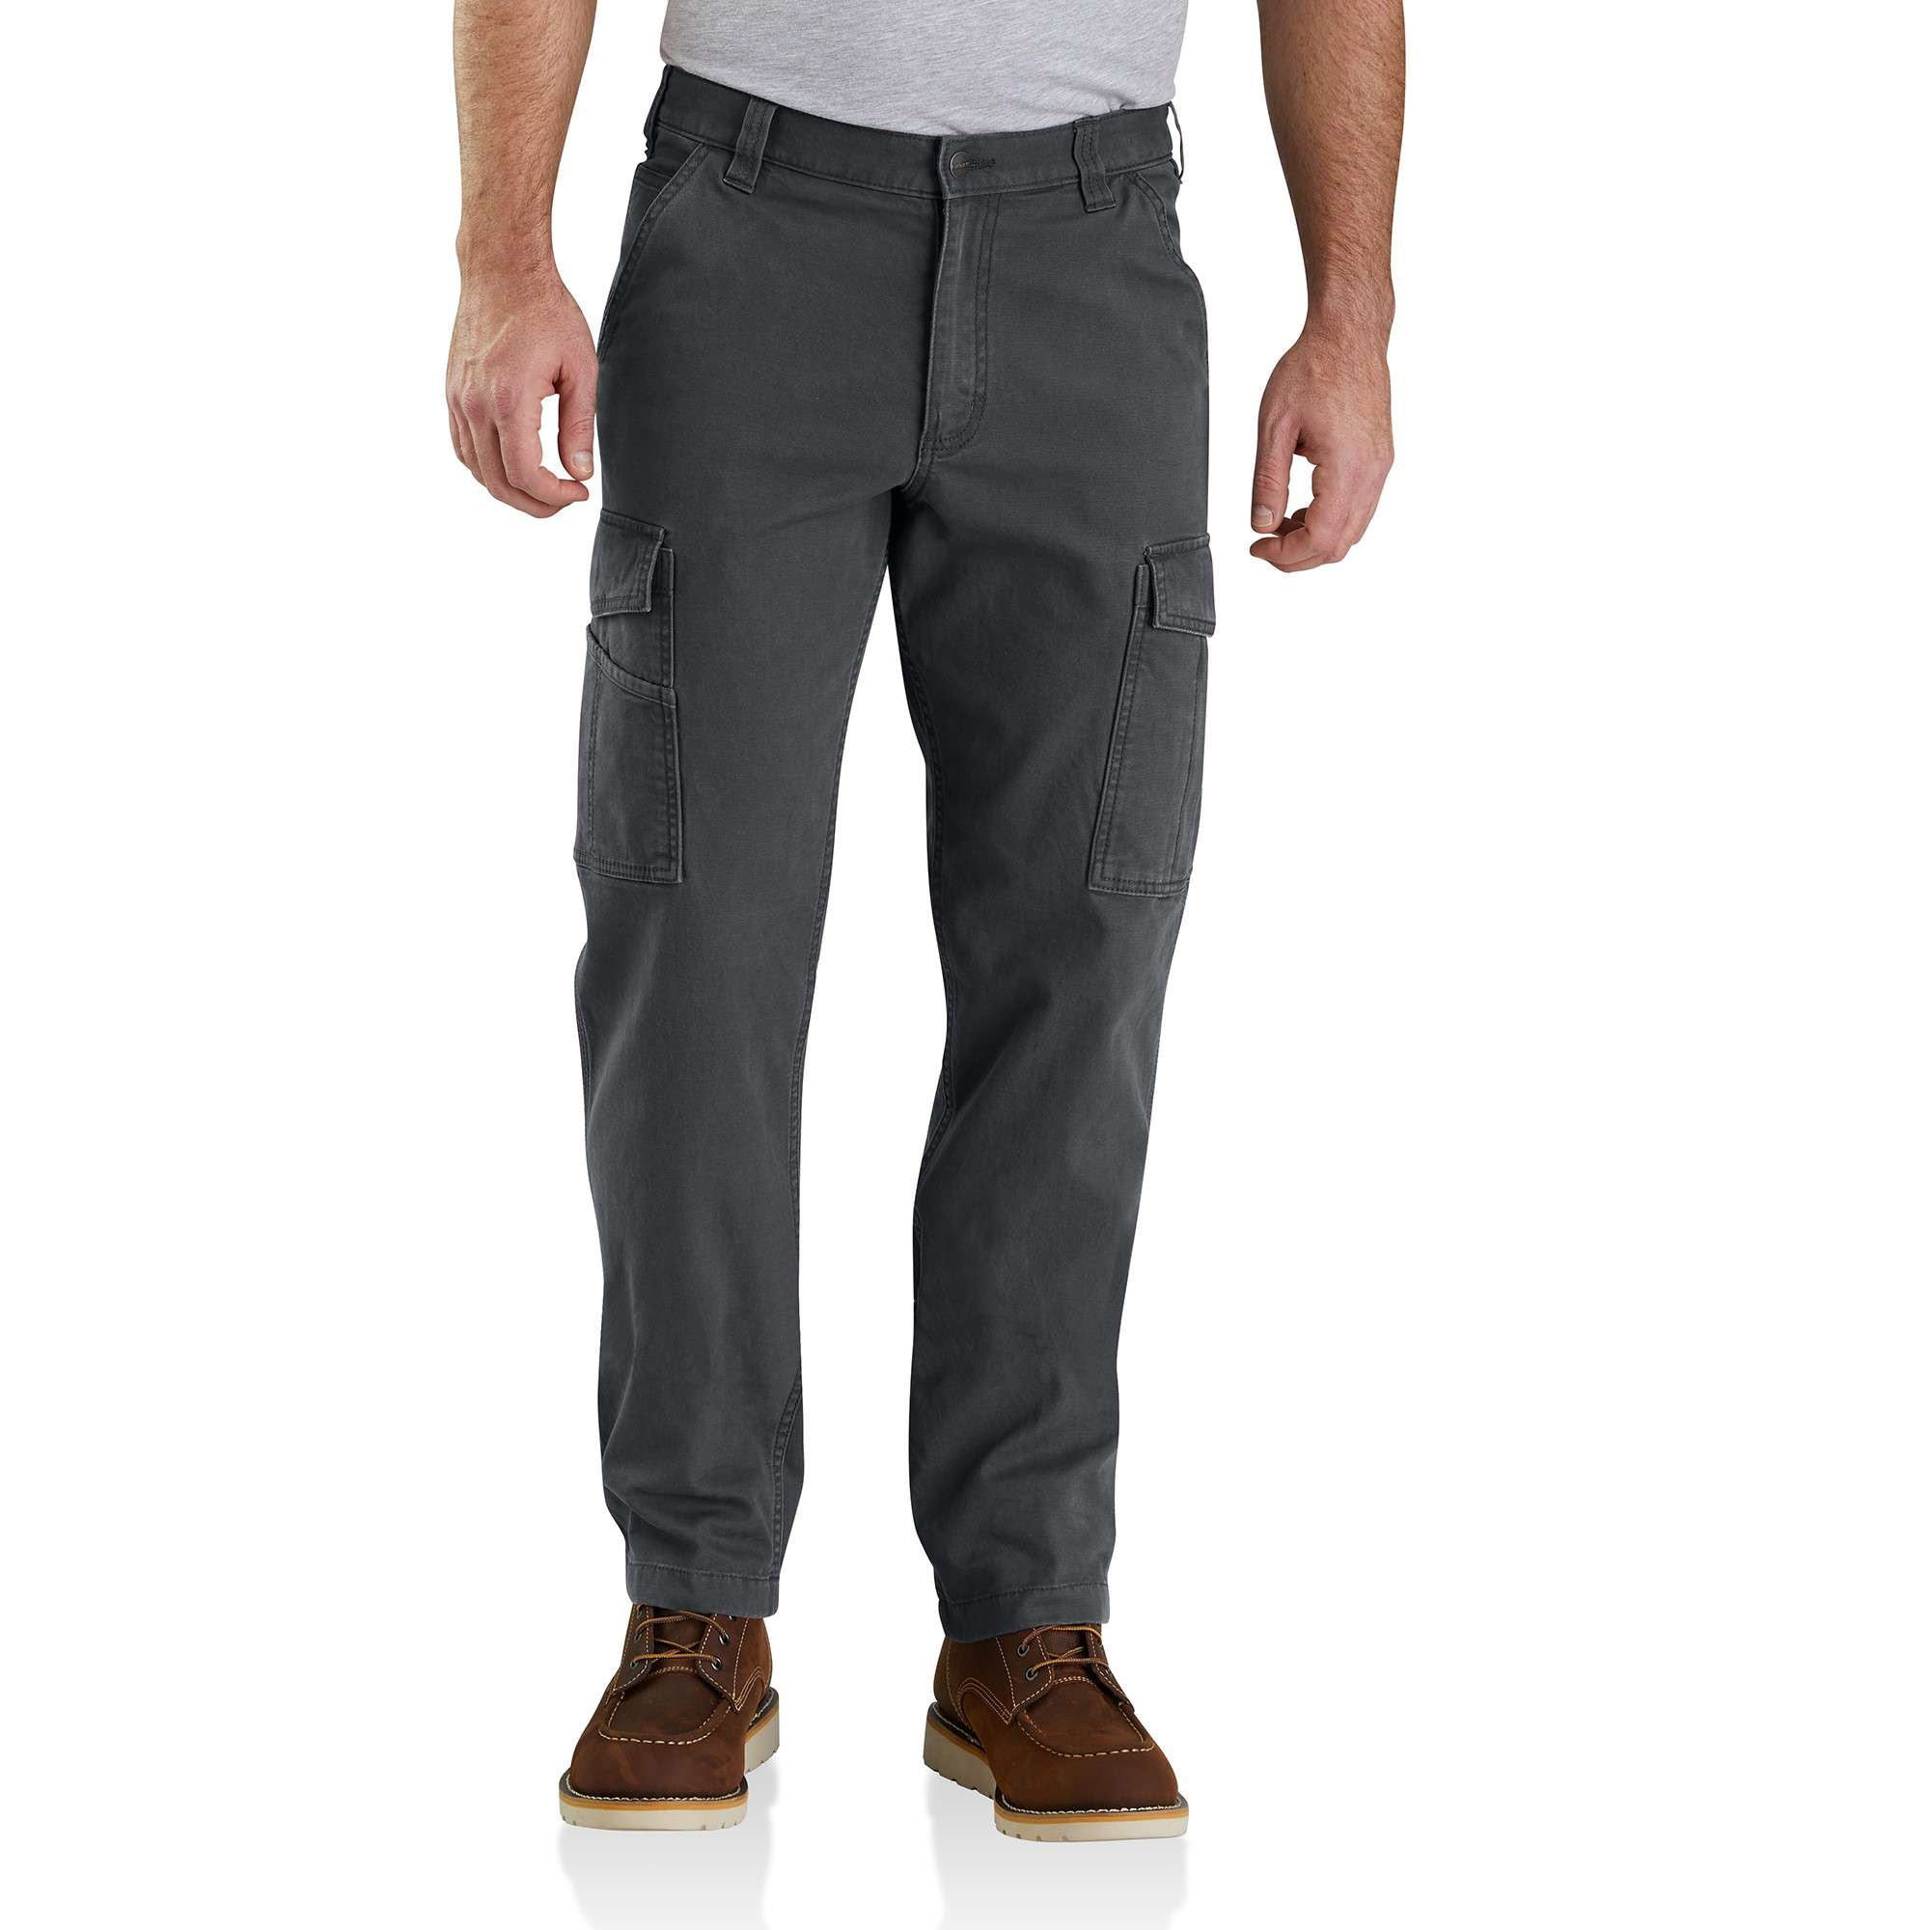 Rugged Flex Rigby Cargo Pant